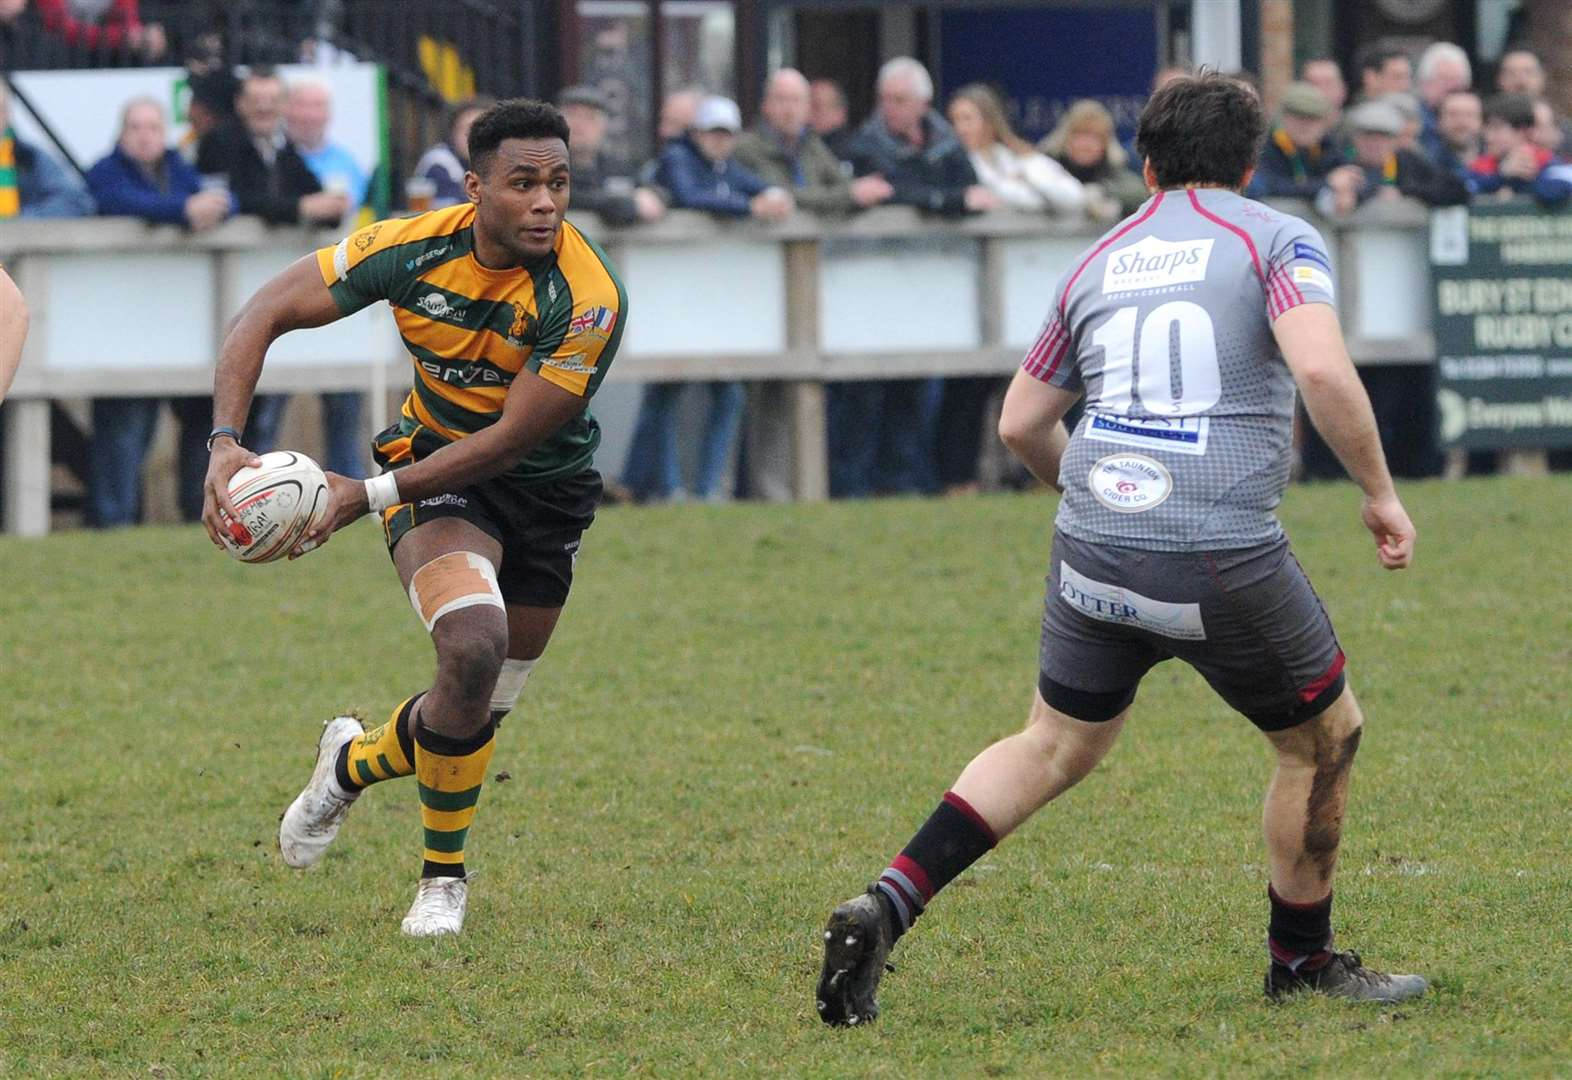 Elite academy spot for talented back rower